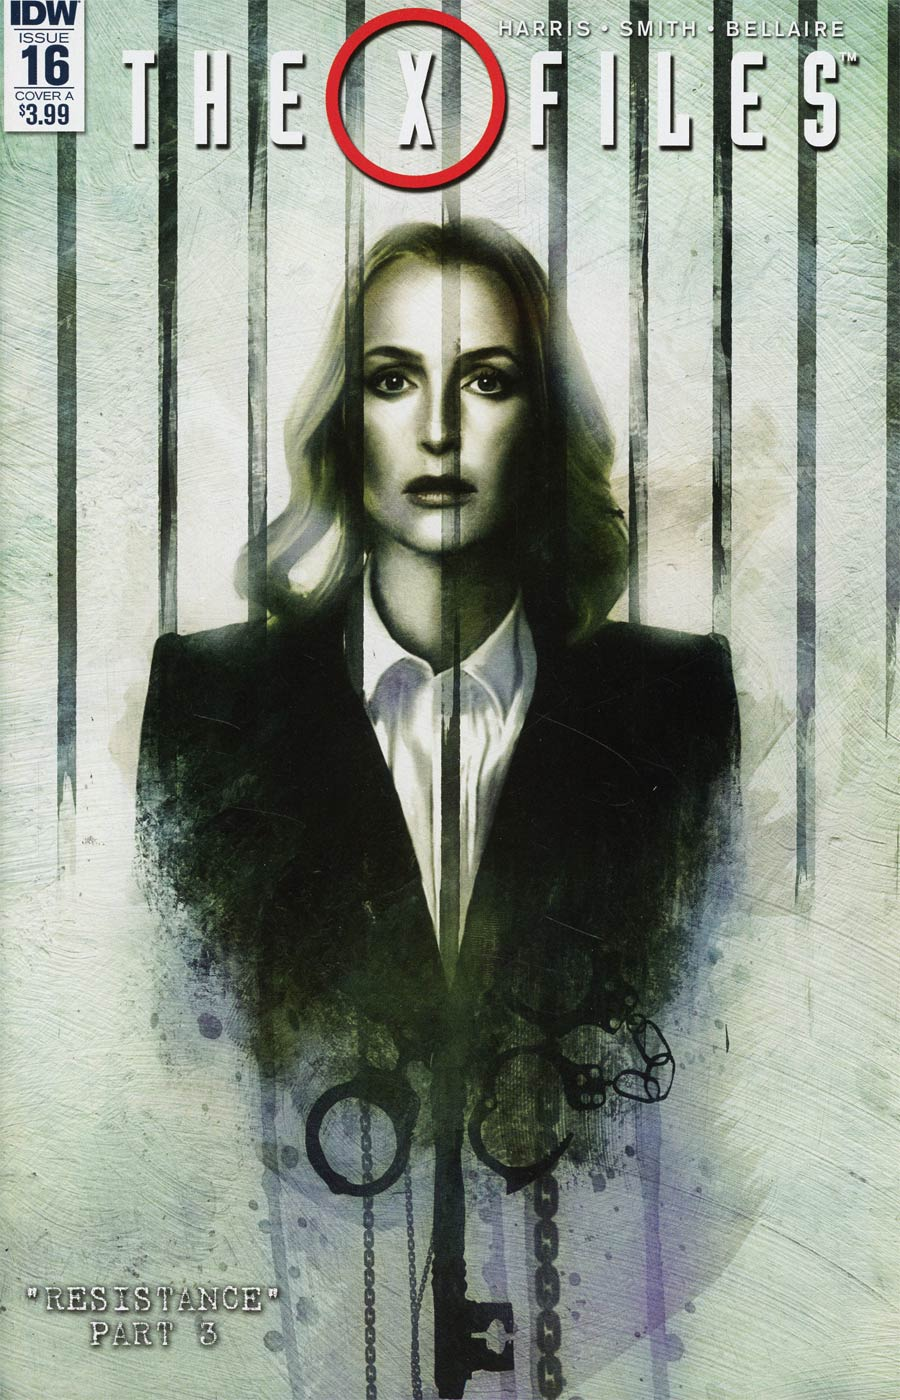 X-Files Vol 3 #16 Cover A Regular Menton3 Cover